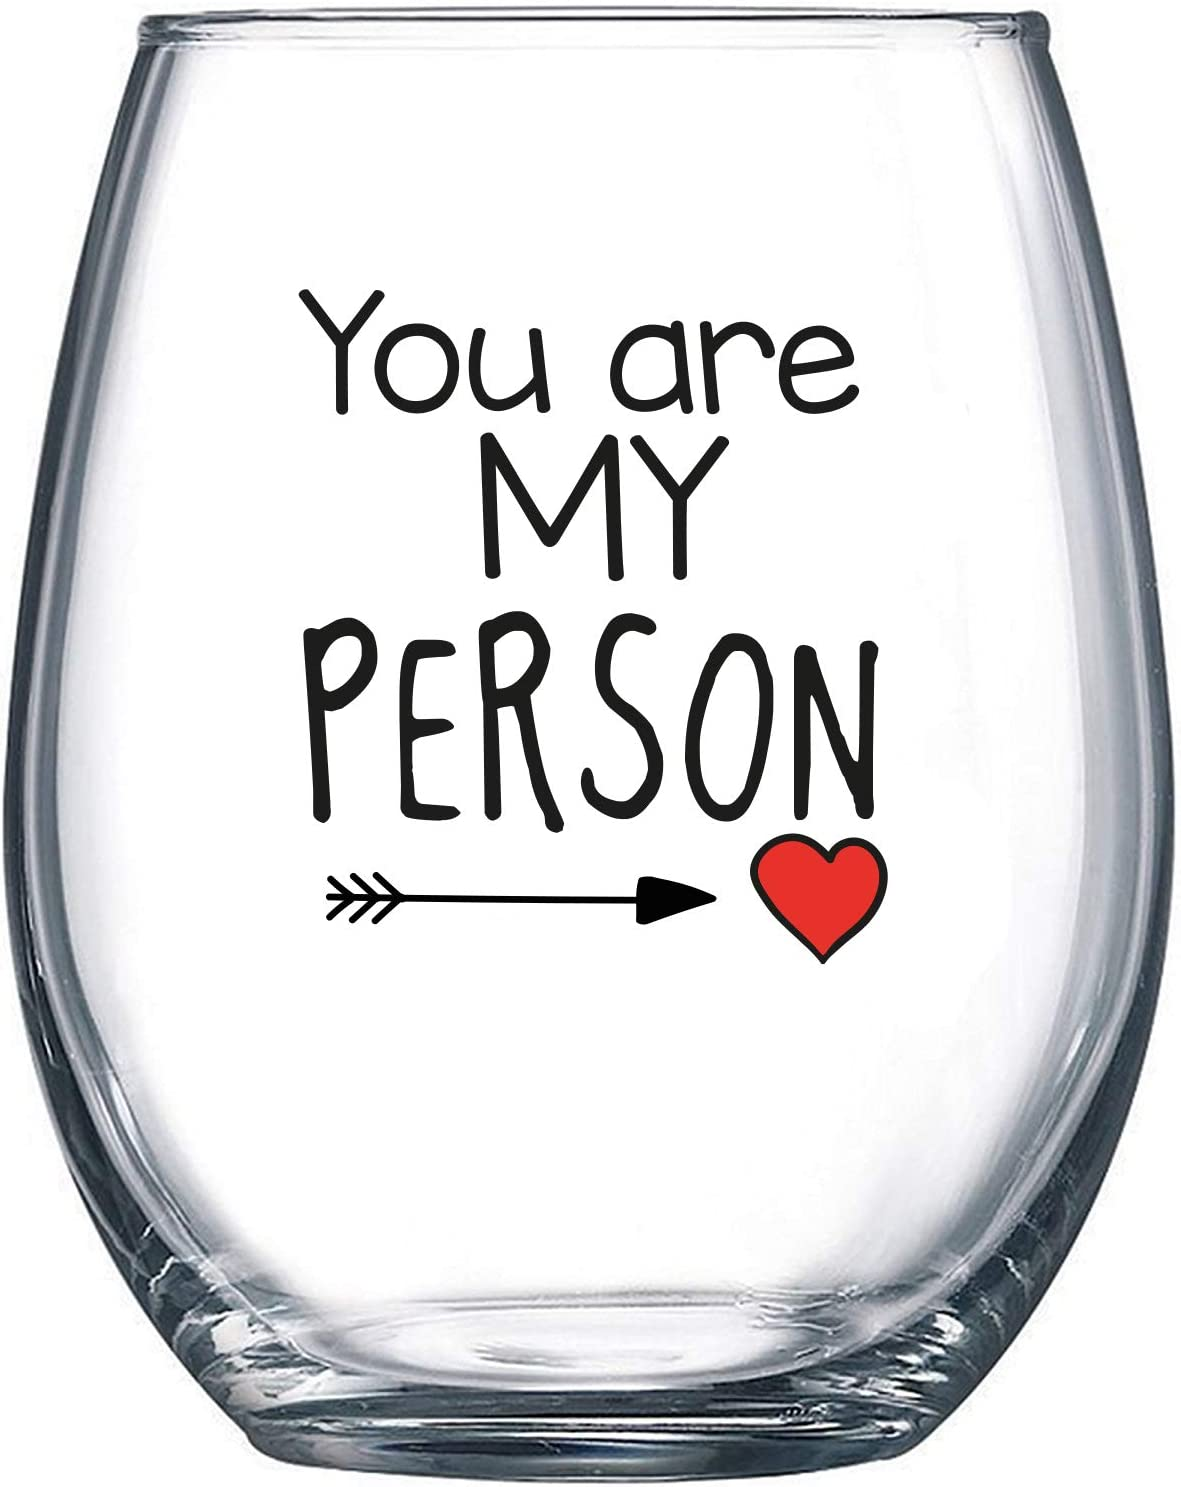 You Are My Person - 15 oz Stemless Wine Glass